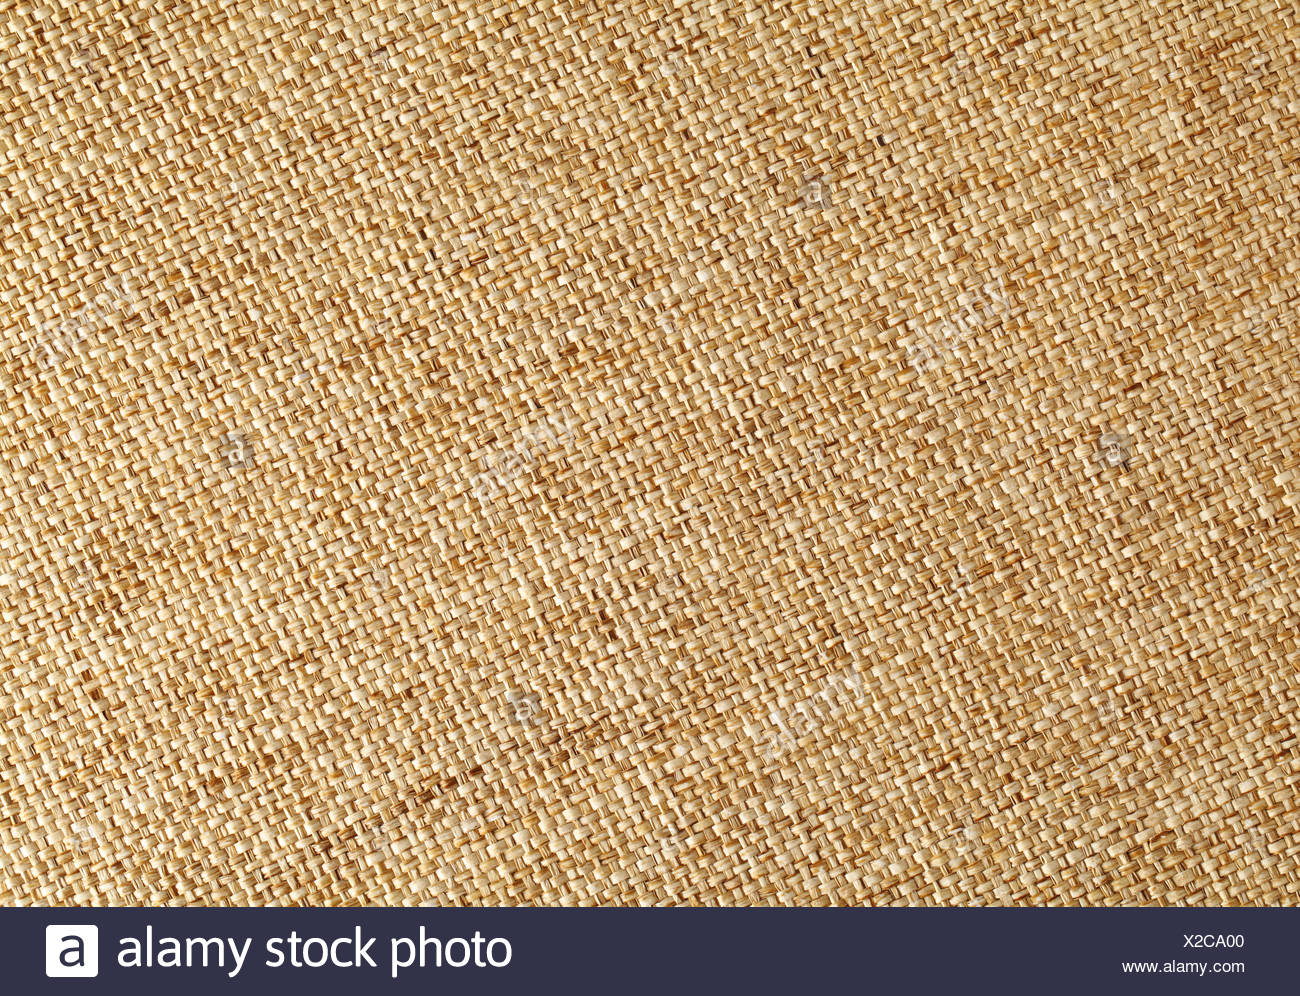 close plait detail - Stock Image